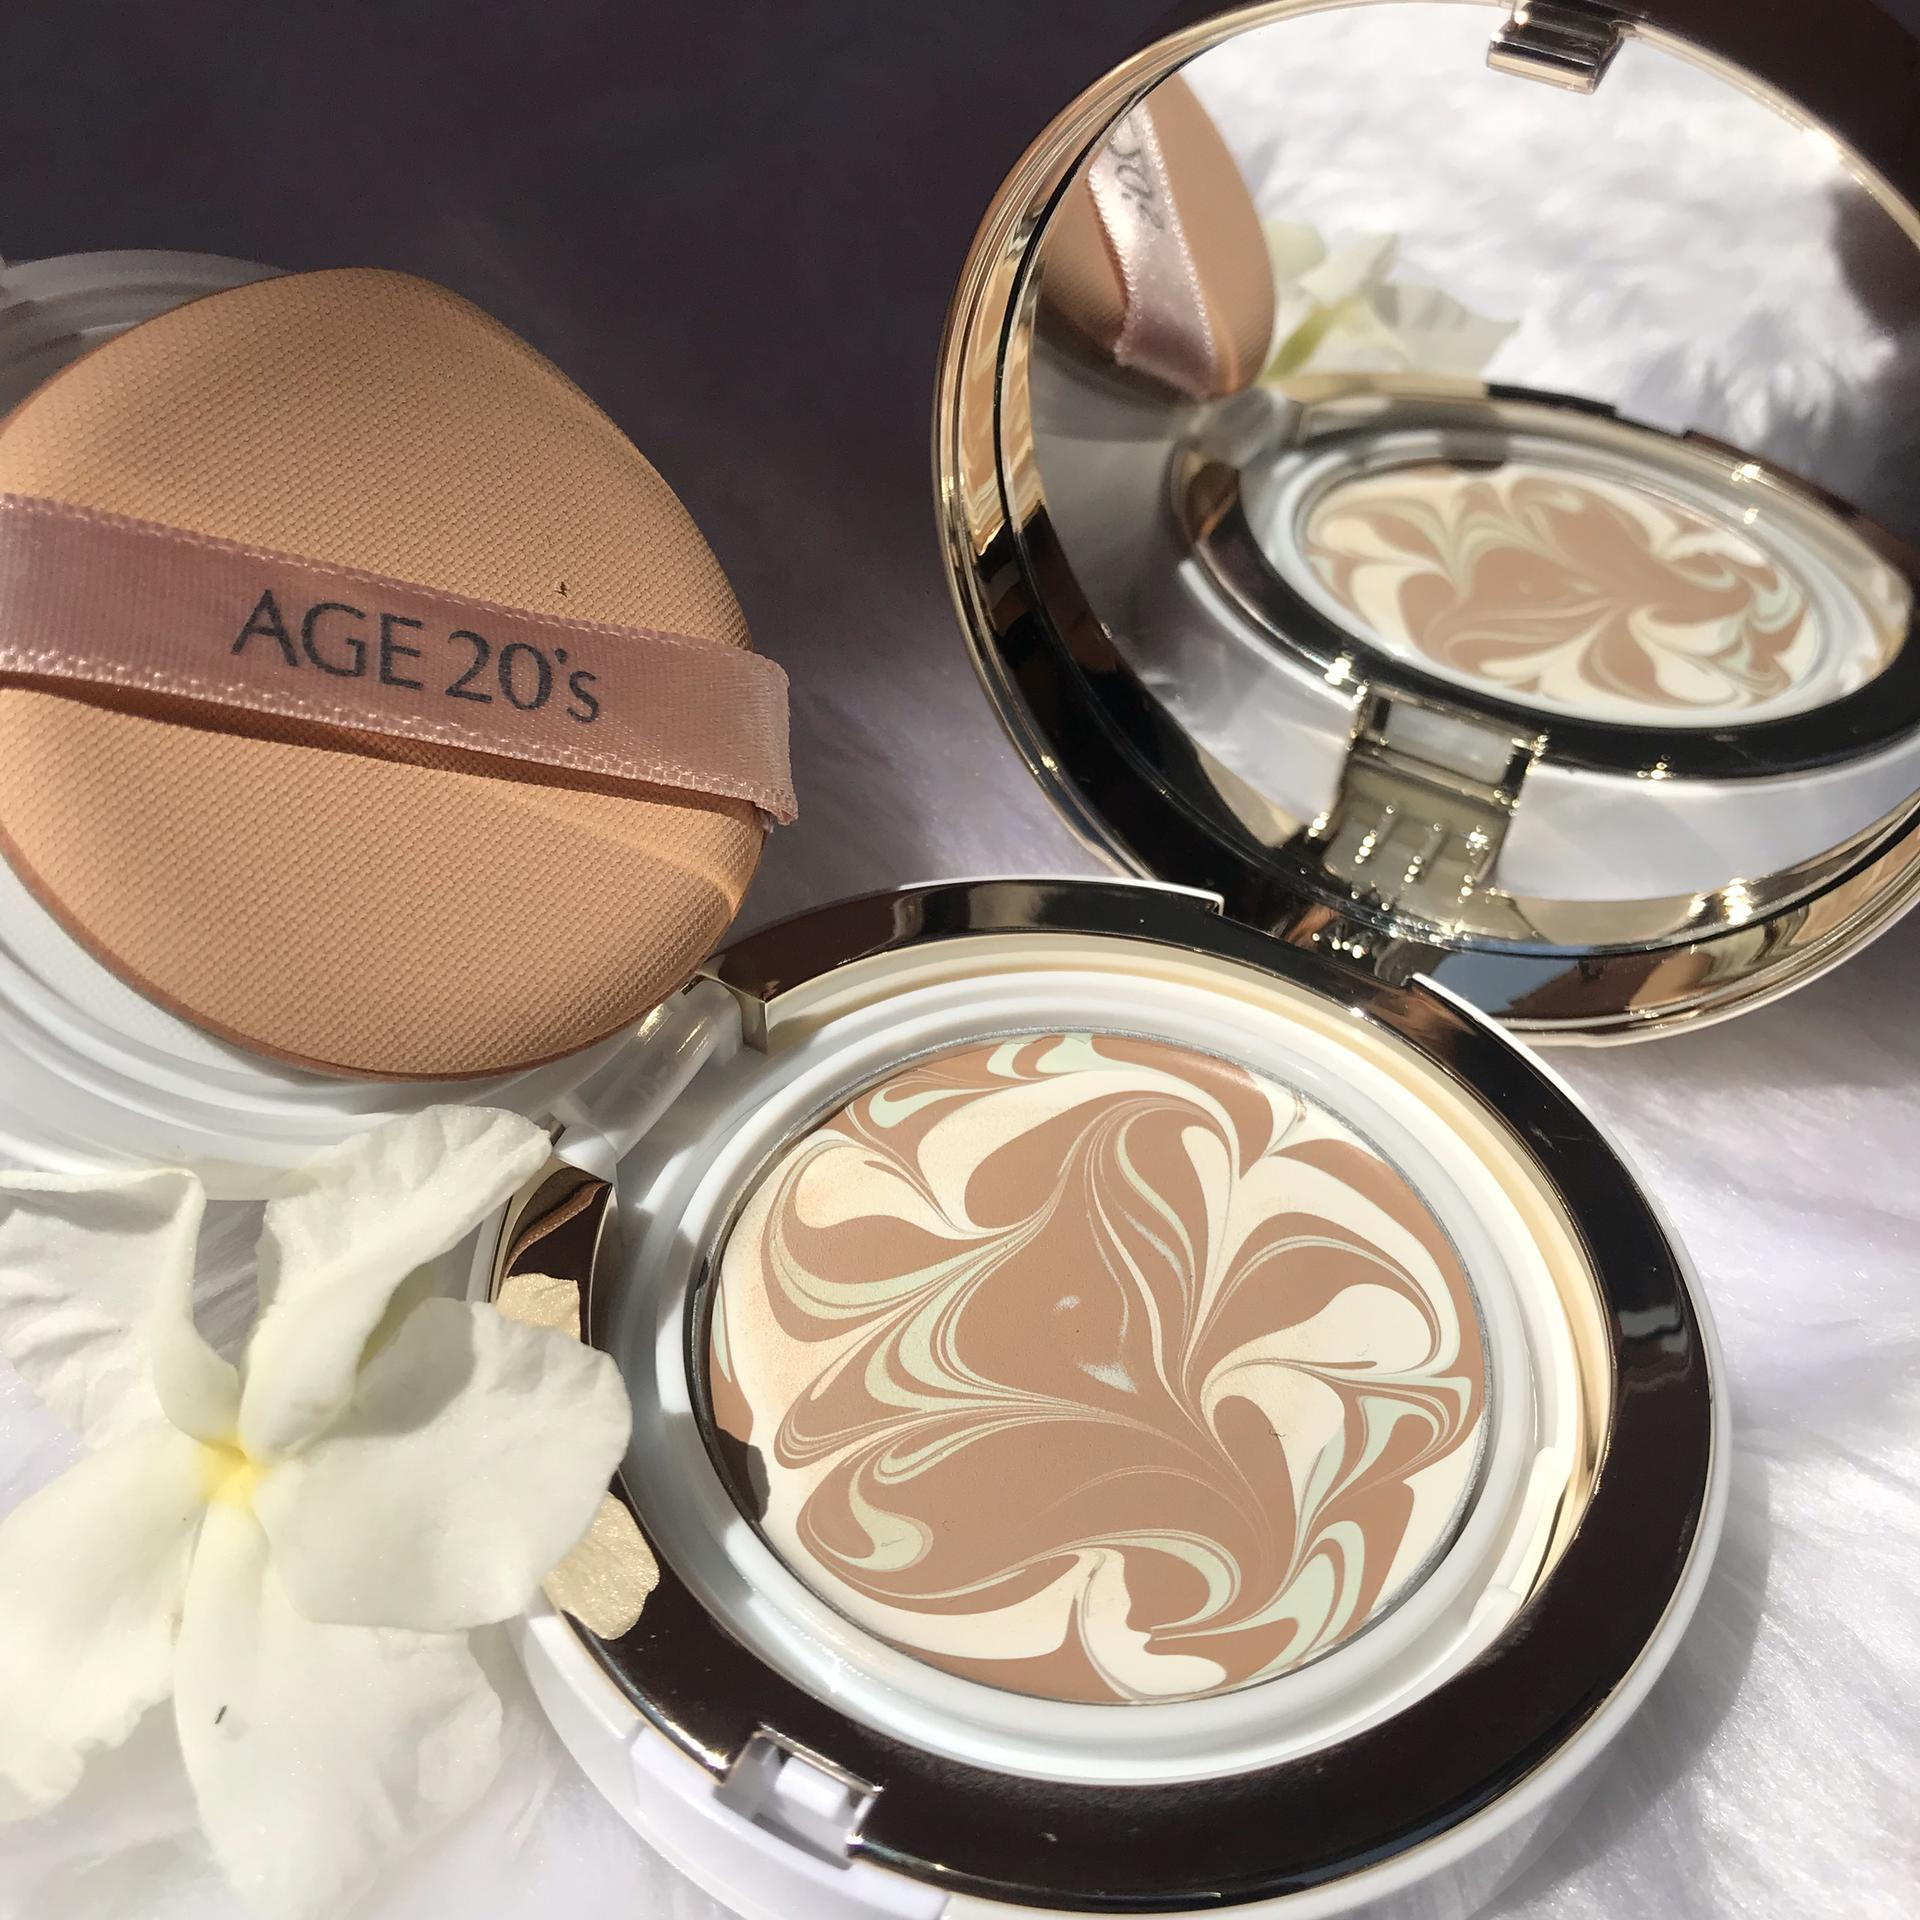 Thiết Kế Phấn Lạnh AGE 20's Signature Essence Cover Pact